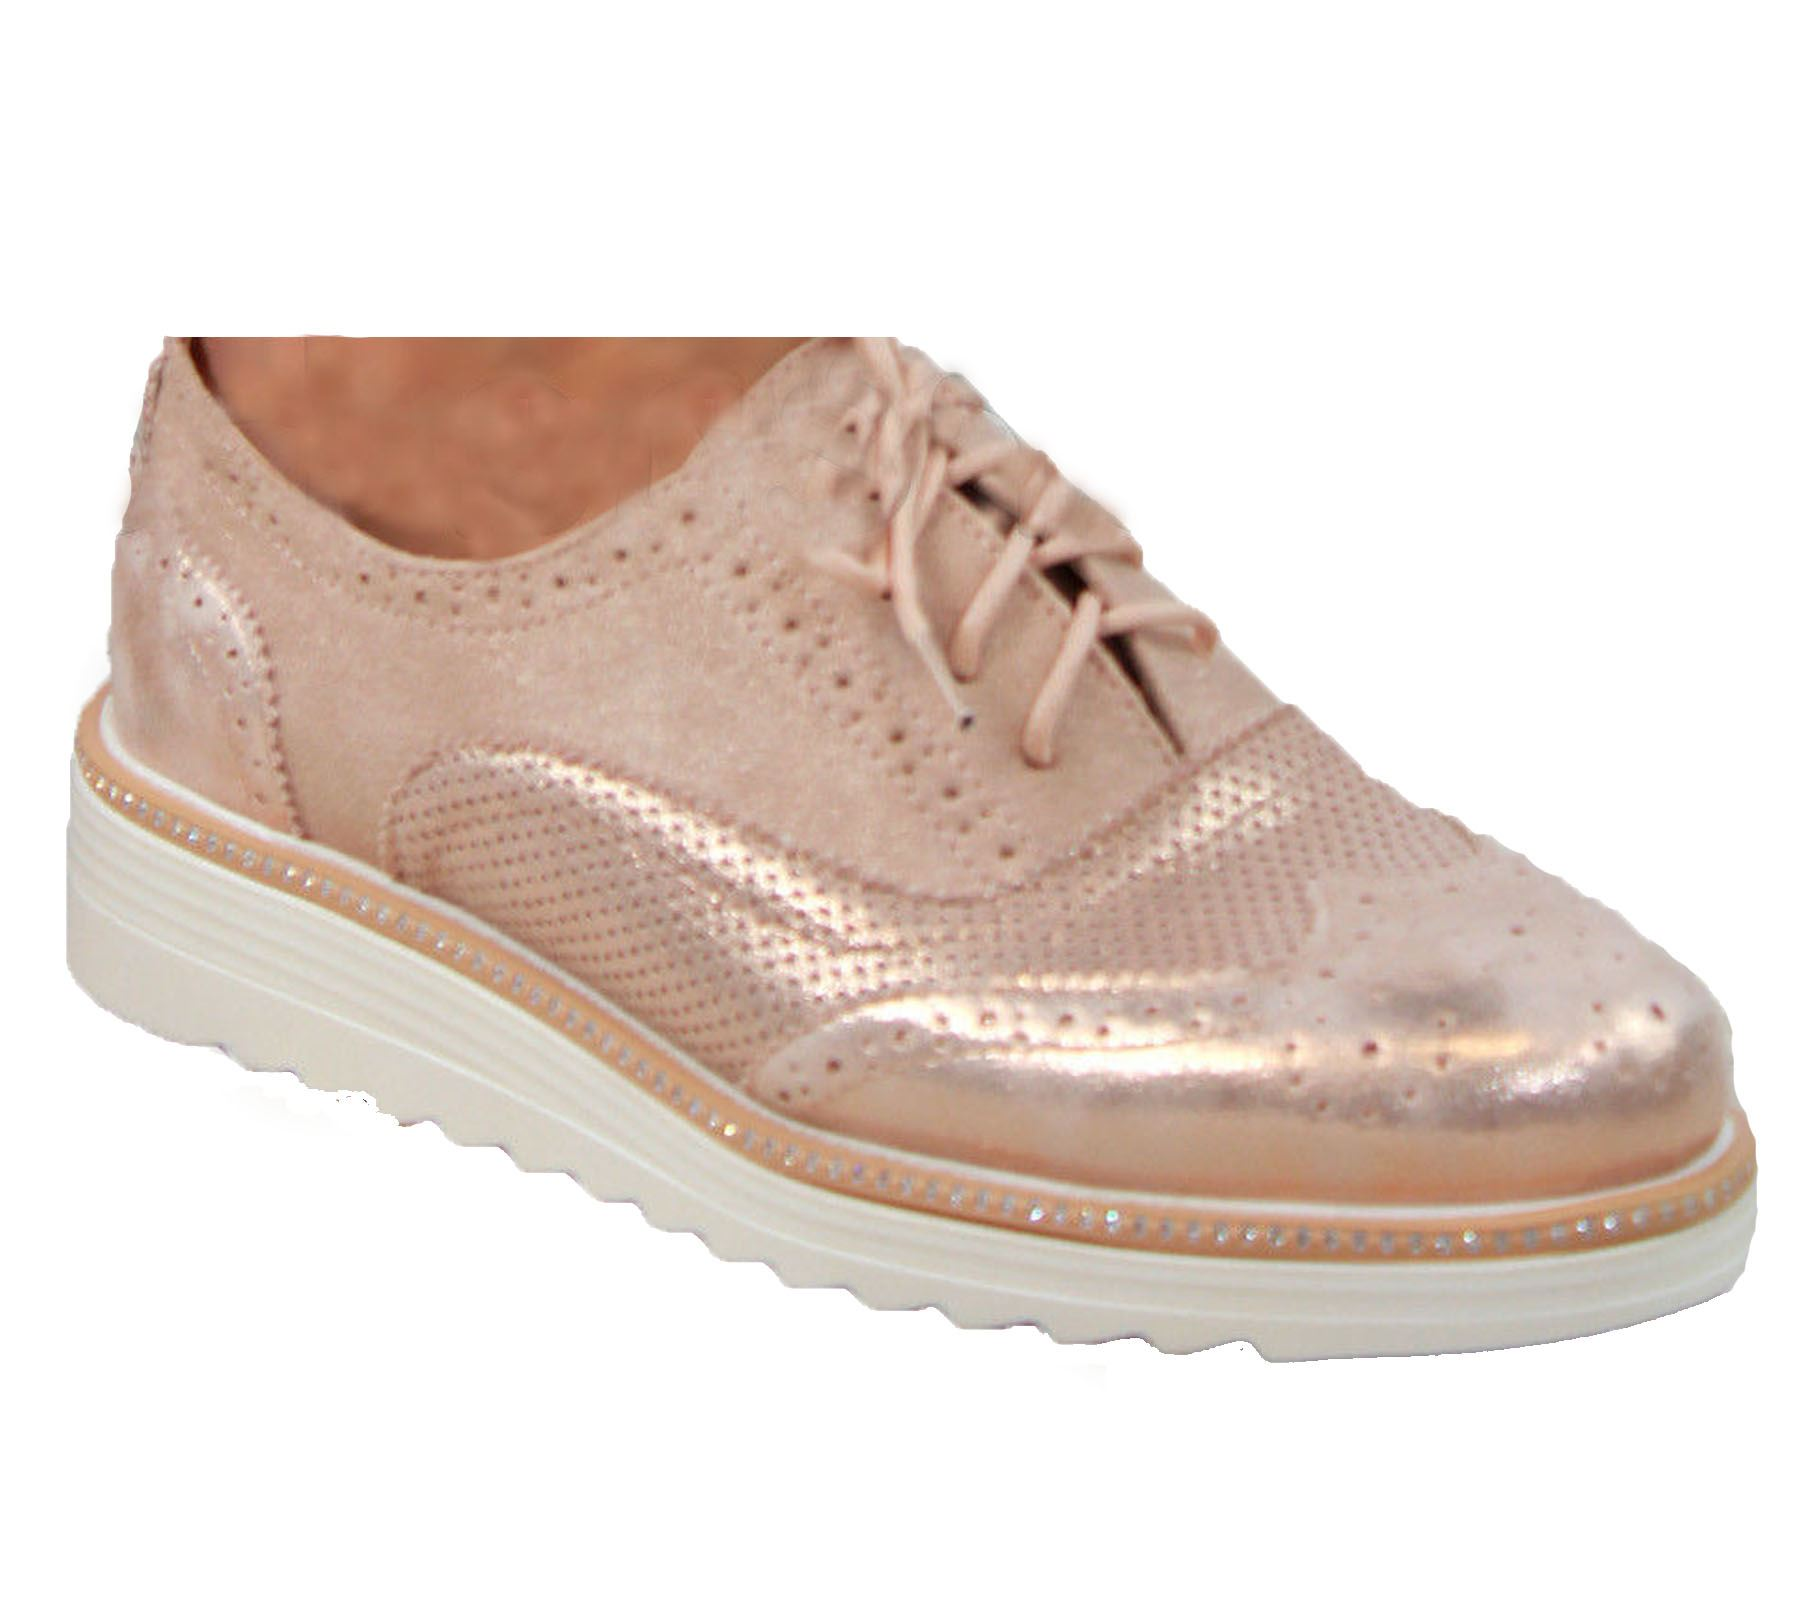 Ladies-Brogue-Lace-Up-Shoes-Womens-Oxford-Smart-Office-Loafers-Shoes miniatura 33